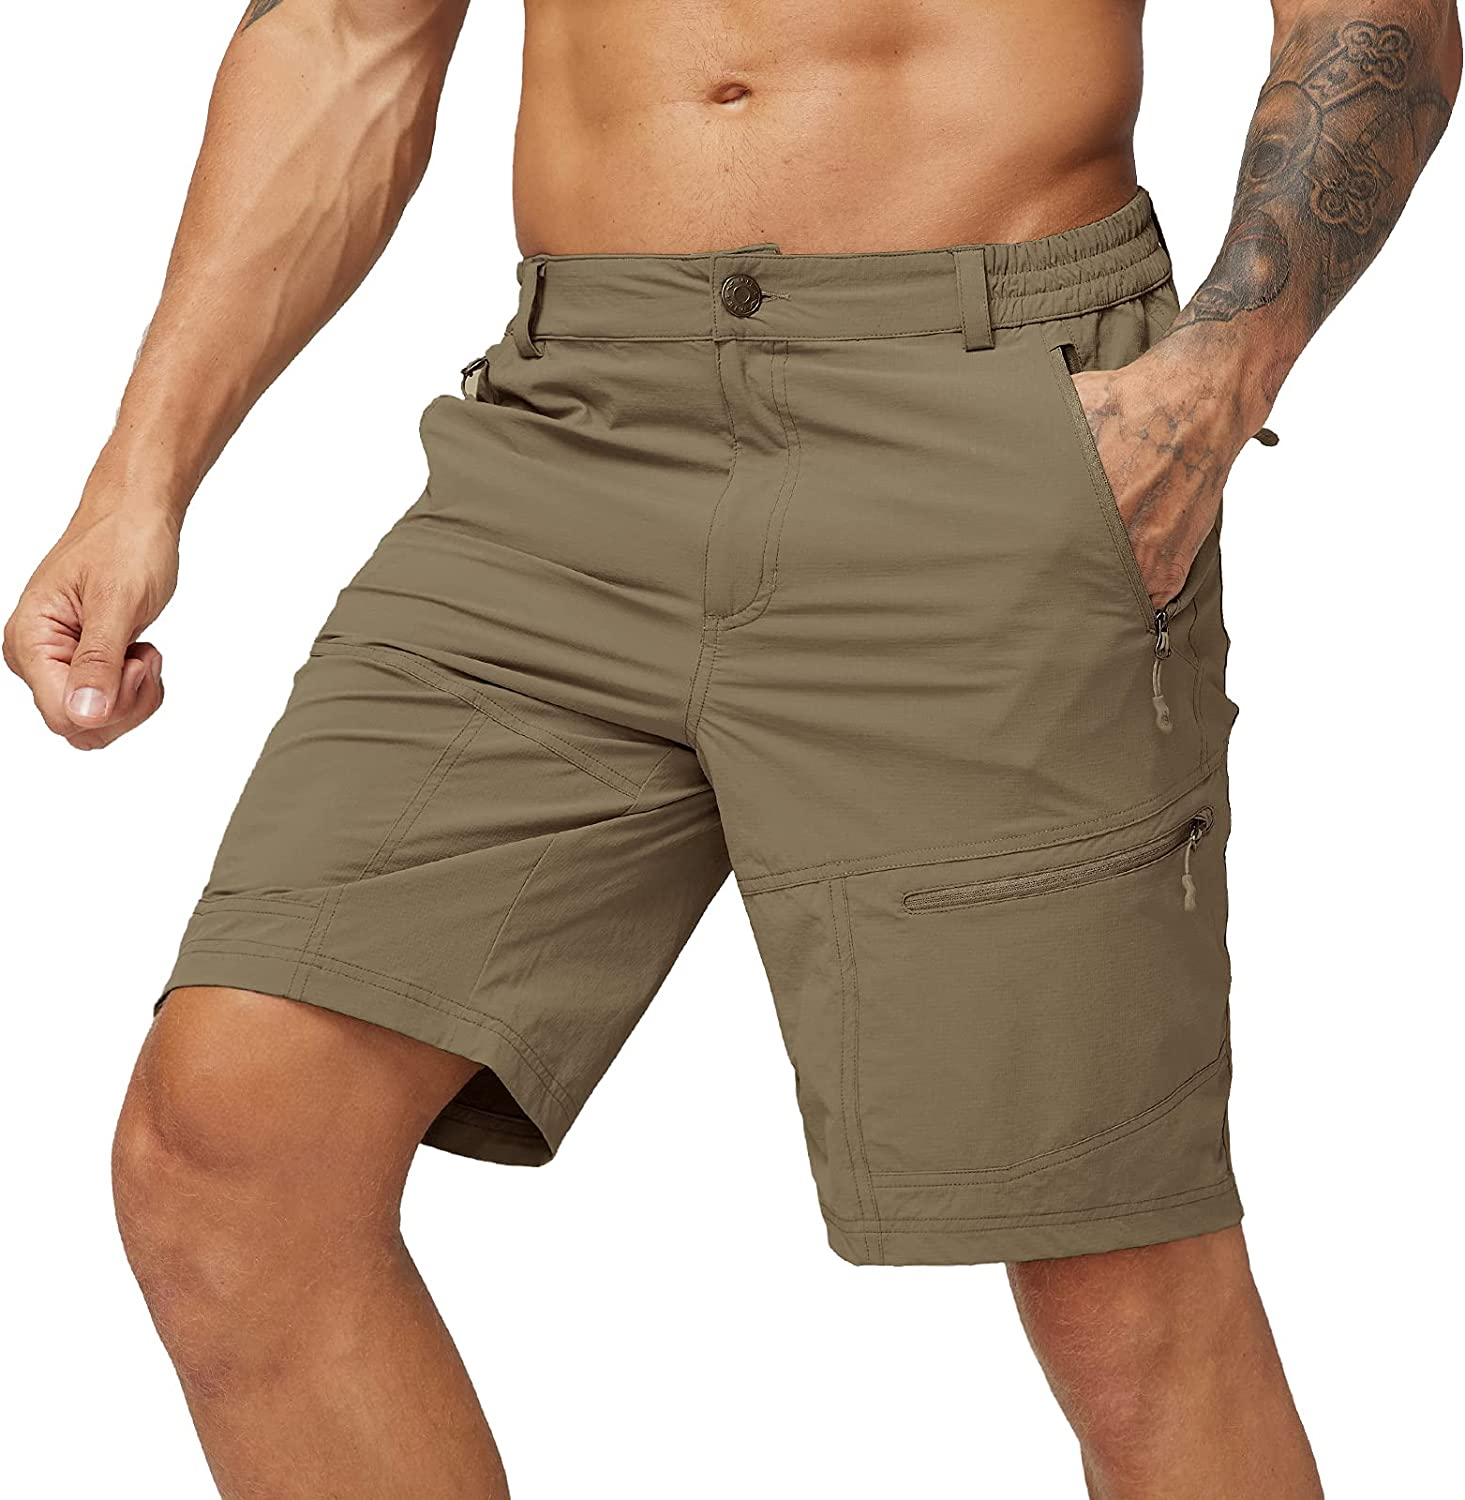 Fresno Mall MIER Men's Challenge the lowest price of Japan Quick Dry Hiking Out Lightweight Shorts Nylon Stretch